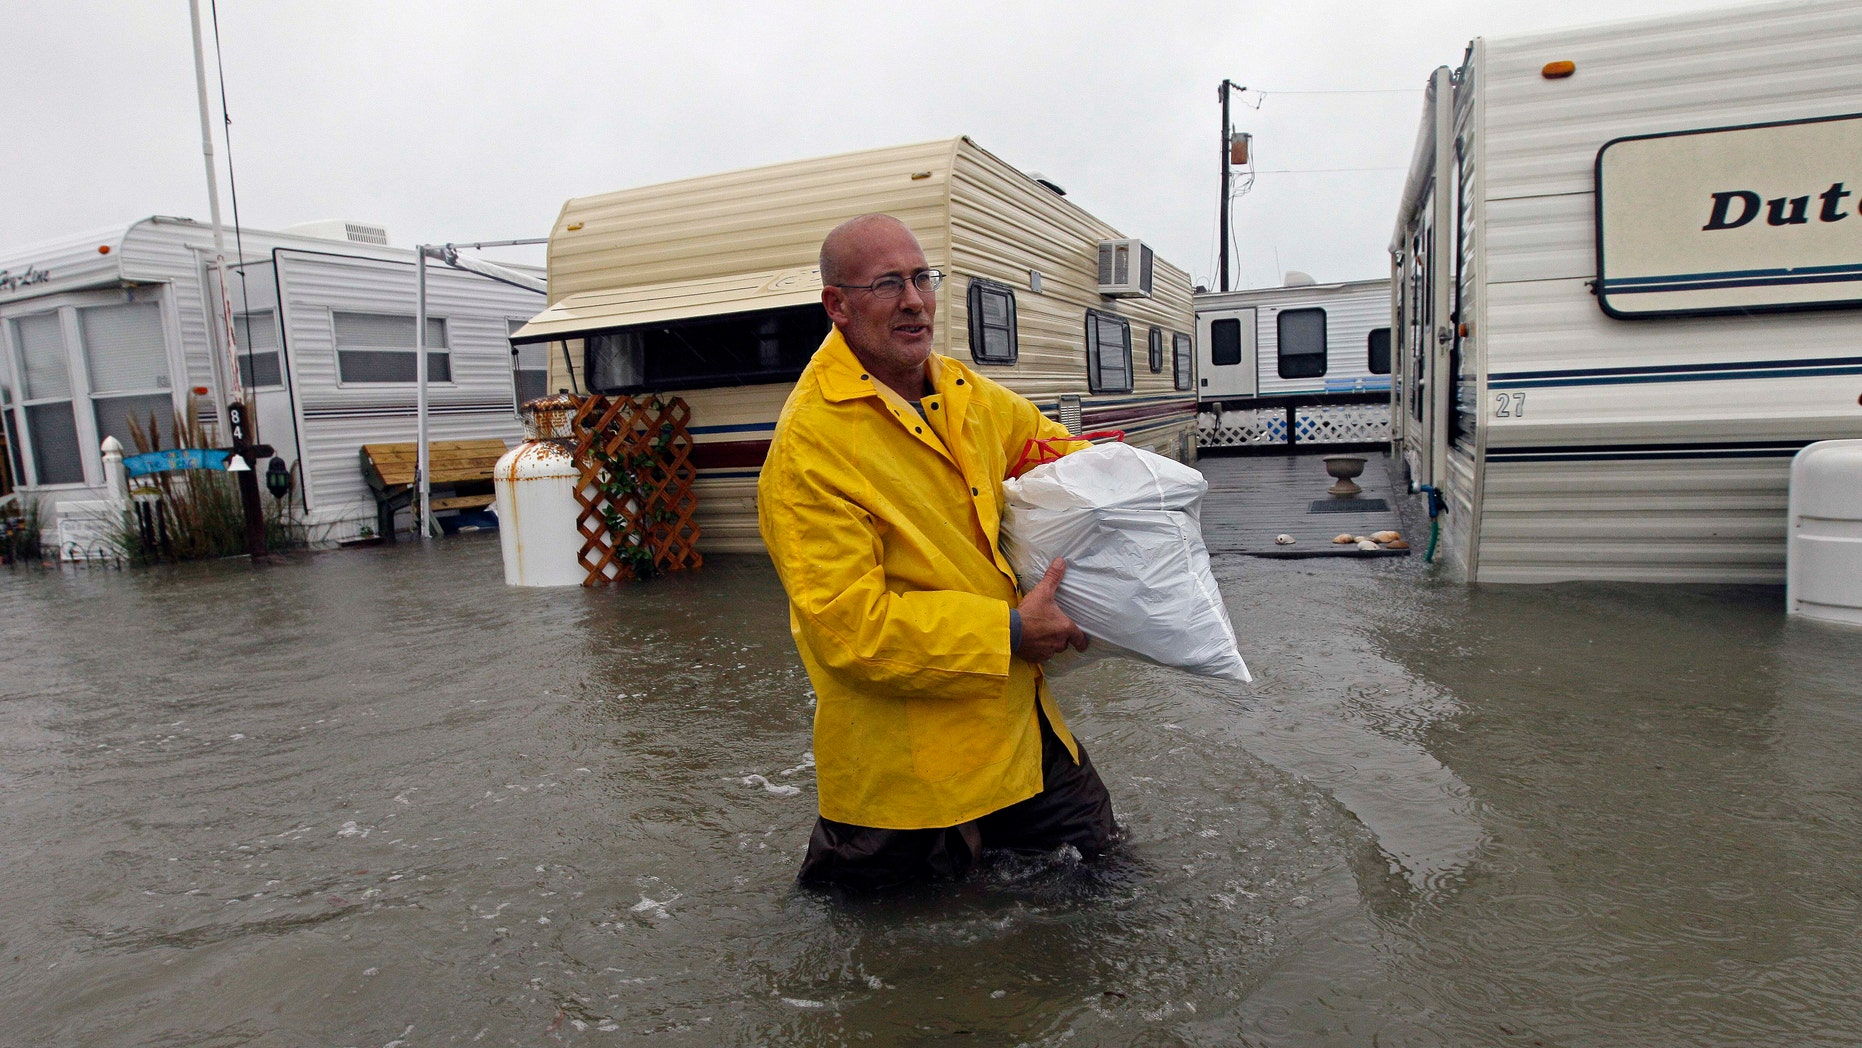 Oct. 29, 2012: Terry Robinson wades through water after retrieving some of his belongings from his flooded trailer at RV Park in Kitty Hawk, N.C., Monday.